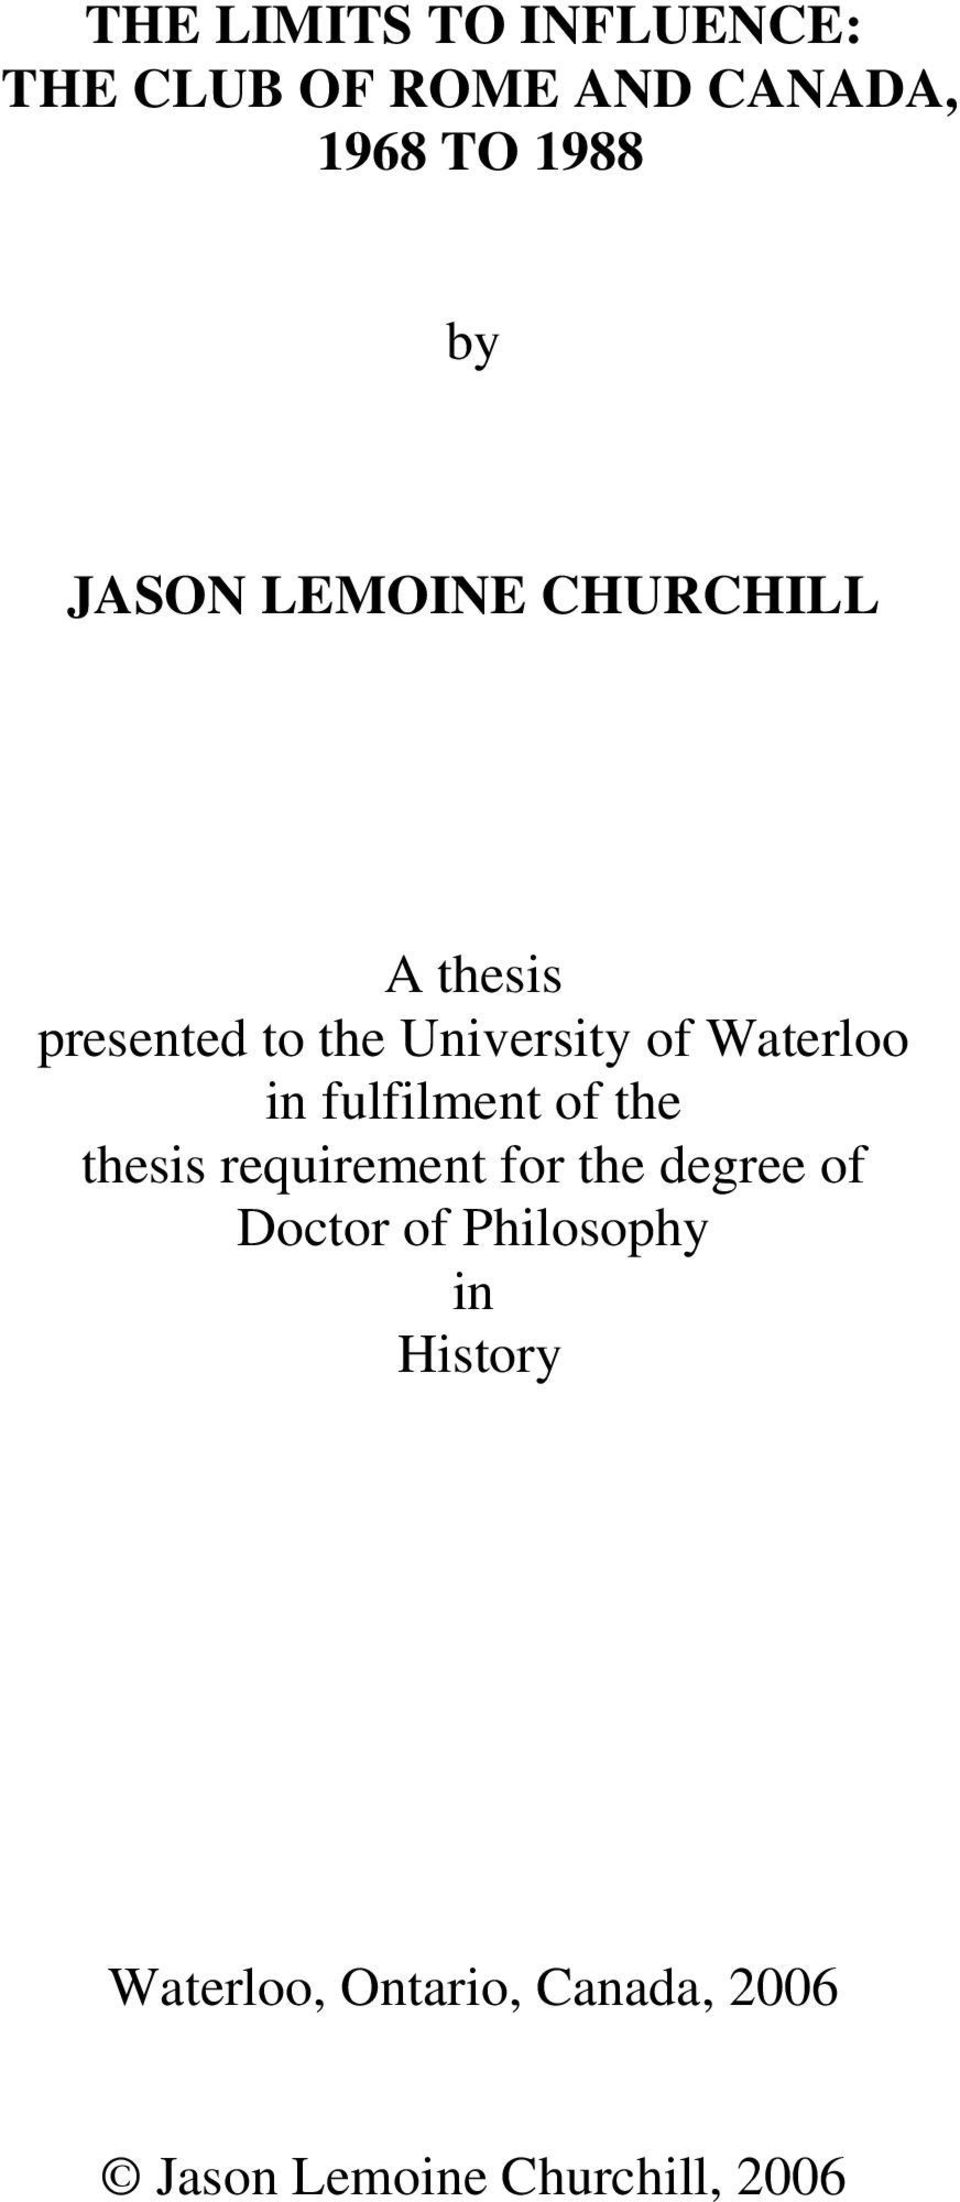 in fulfilment of the thesis requirement for the degree of Doctor of